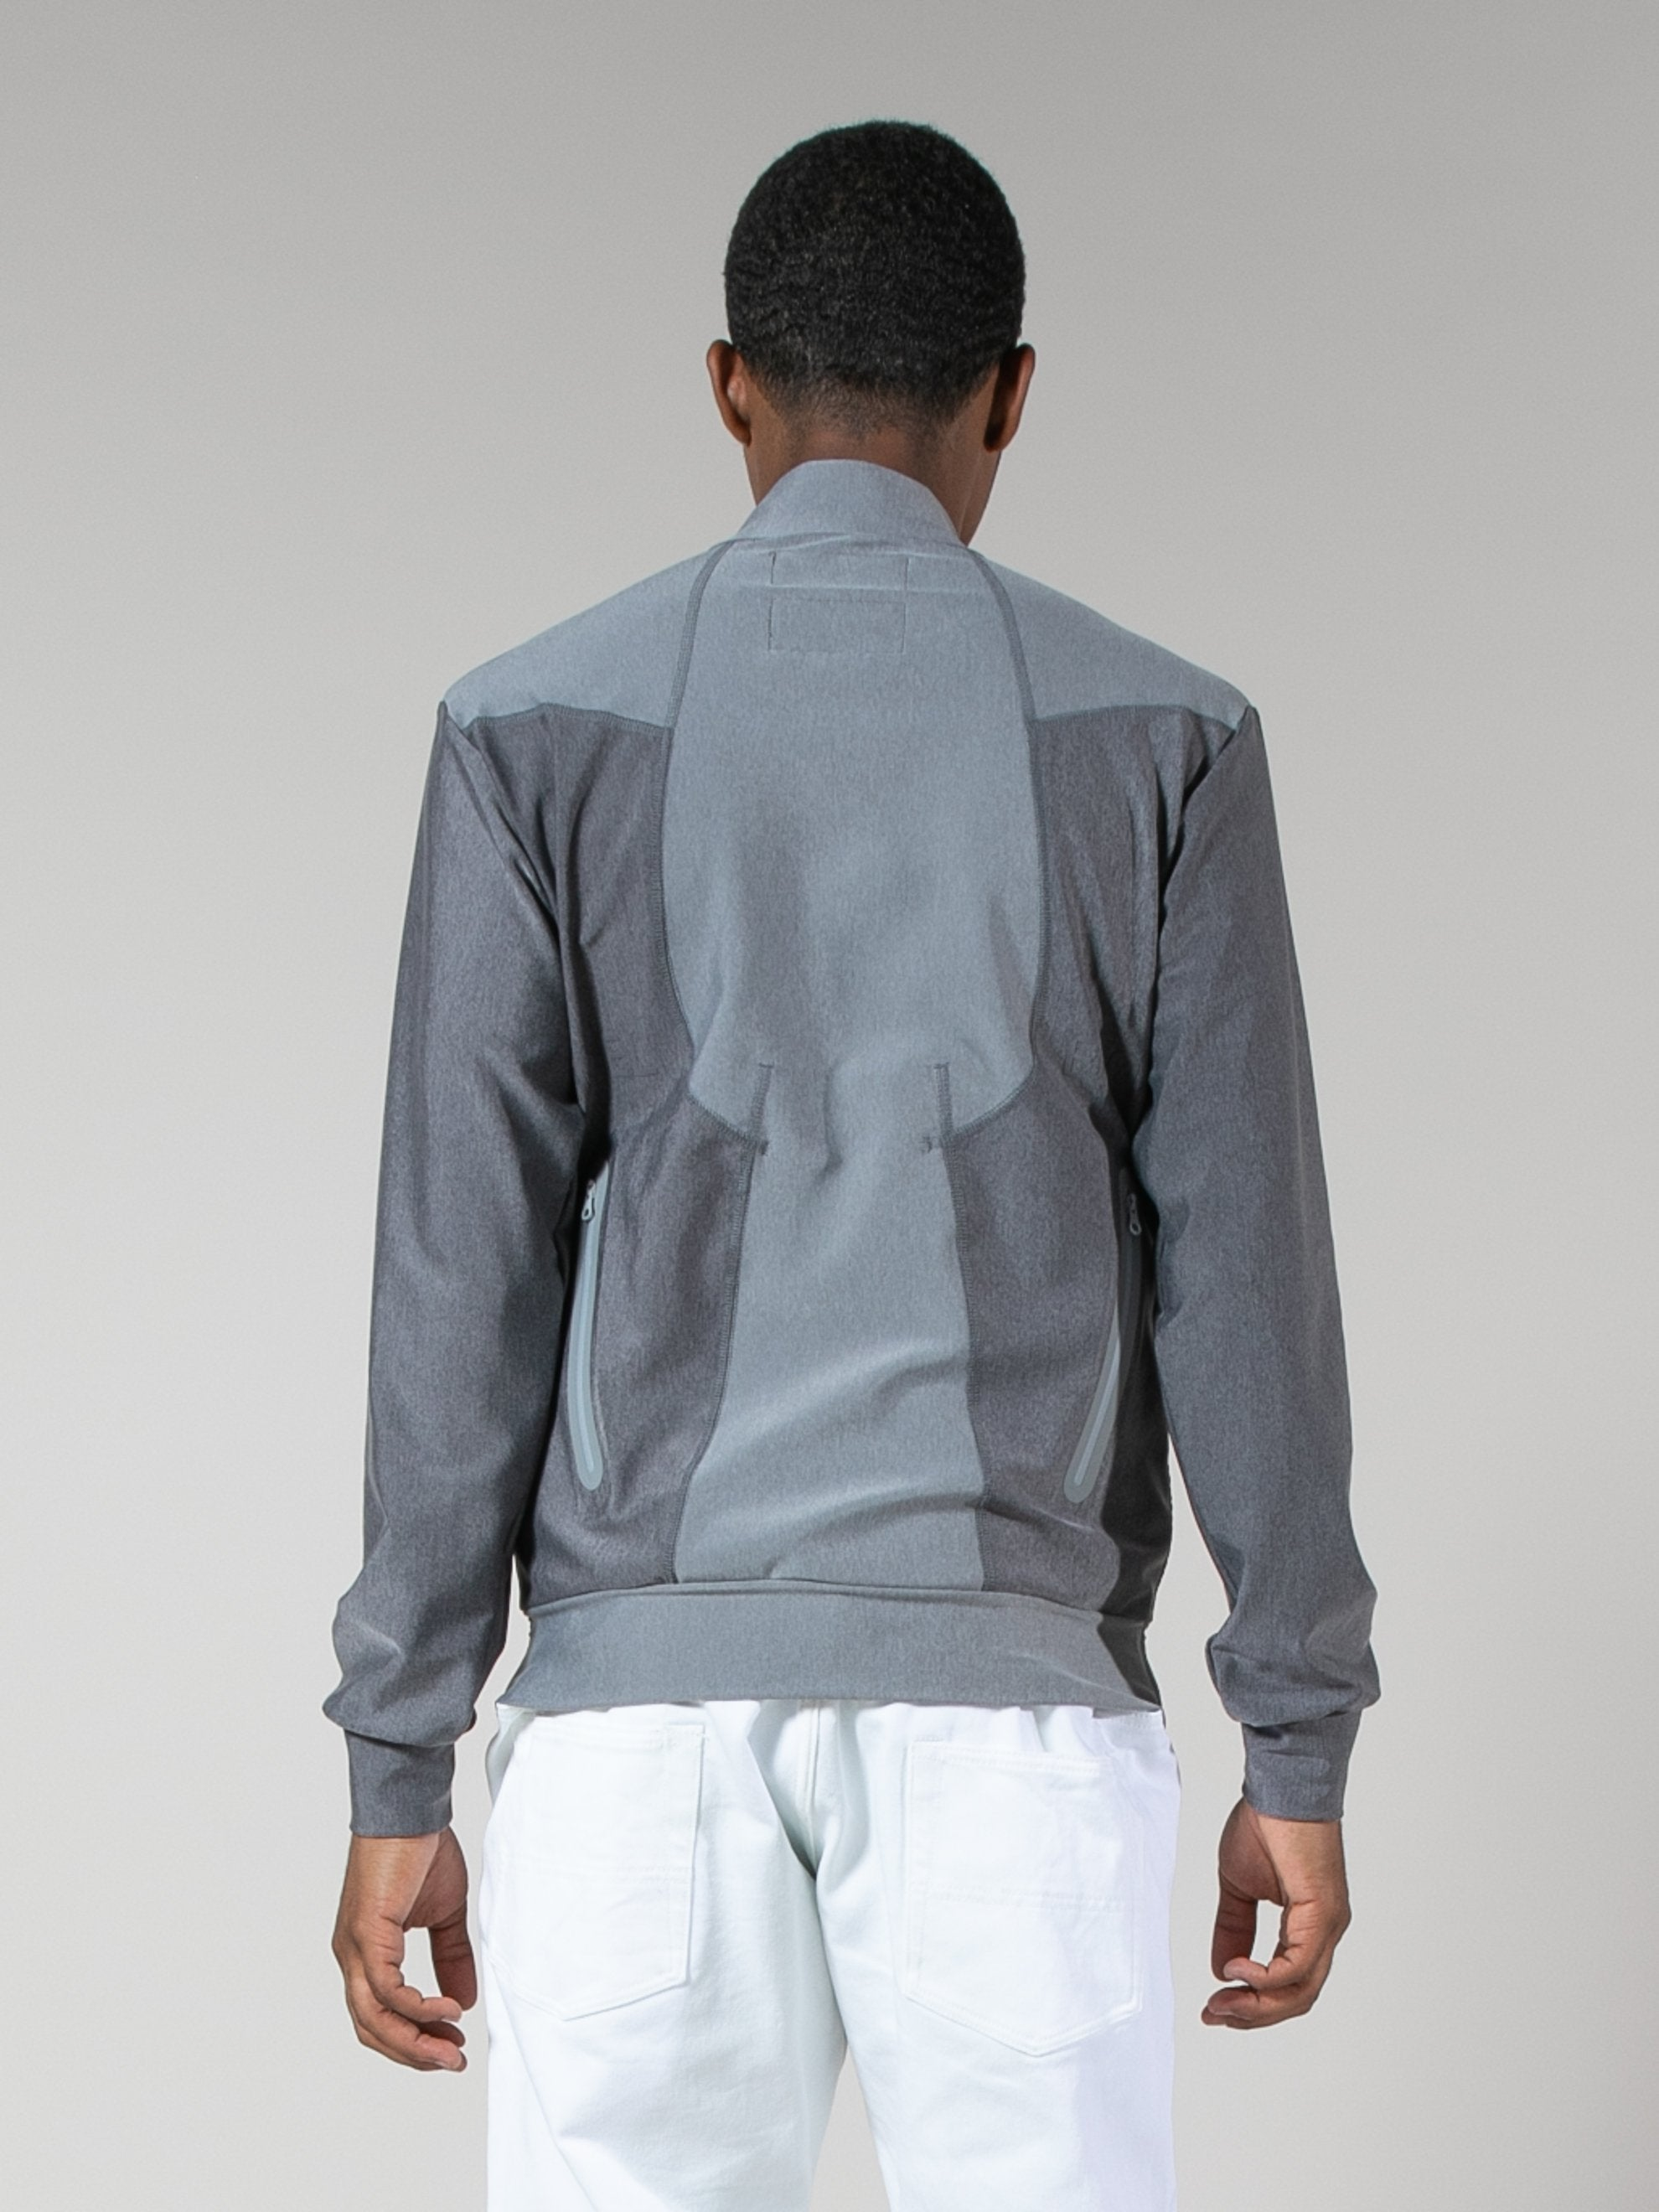 Charcoal Grey Quick-Dry Zip Sweater 6